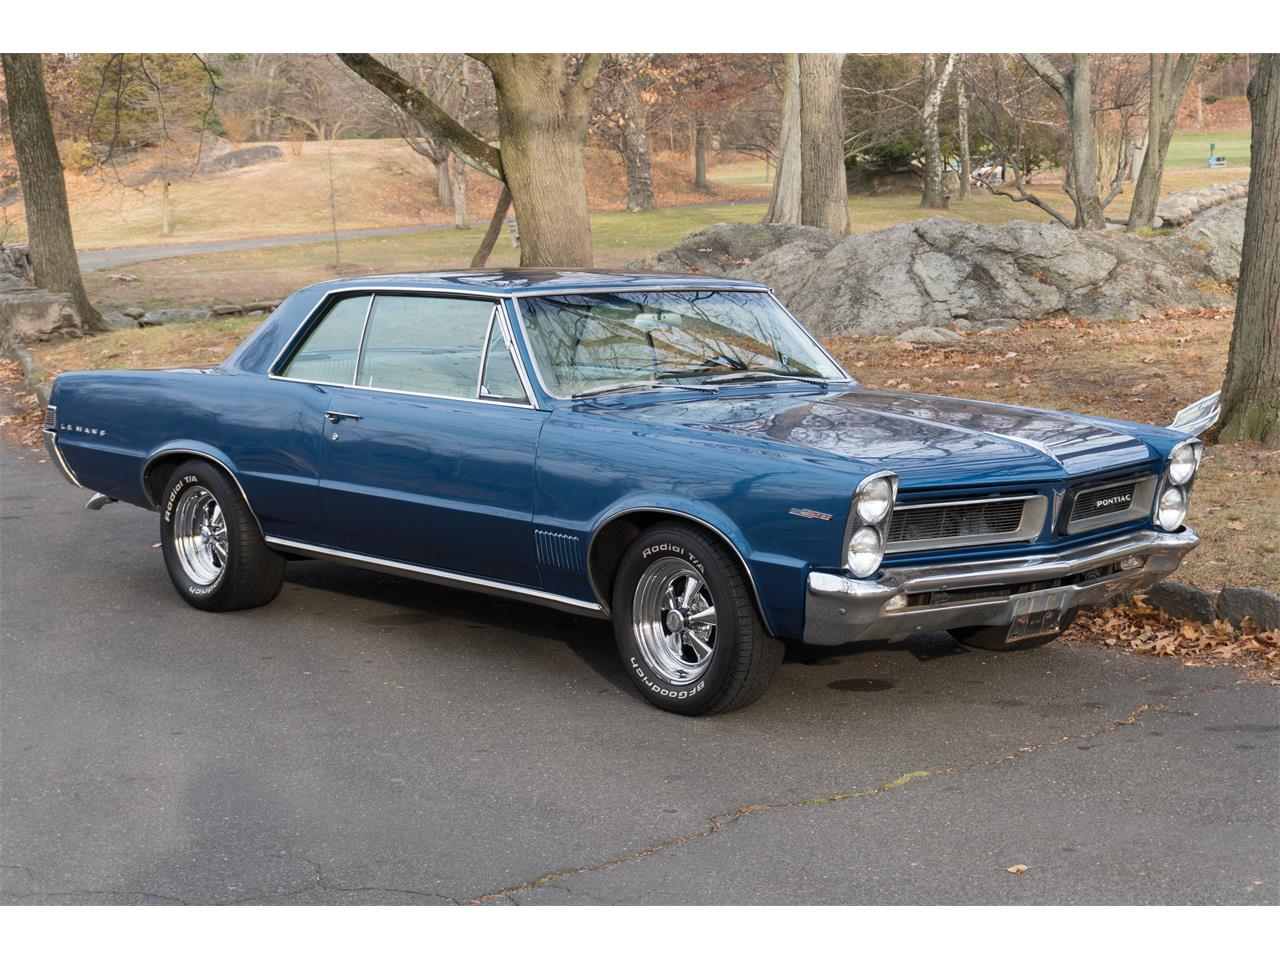 Large Picture of '65 Pontiac LeMans located in Riverside Connecticut - $22,500.00 - MGO8